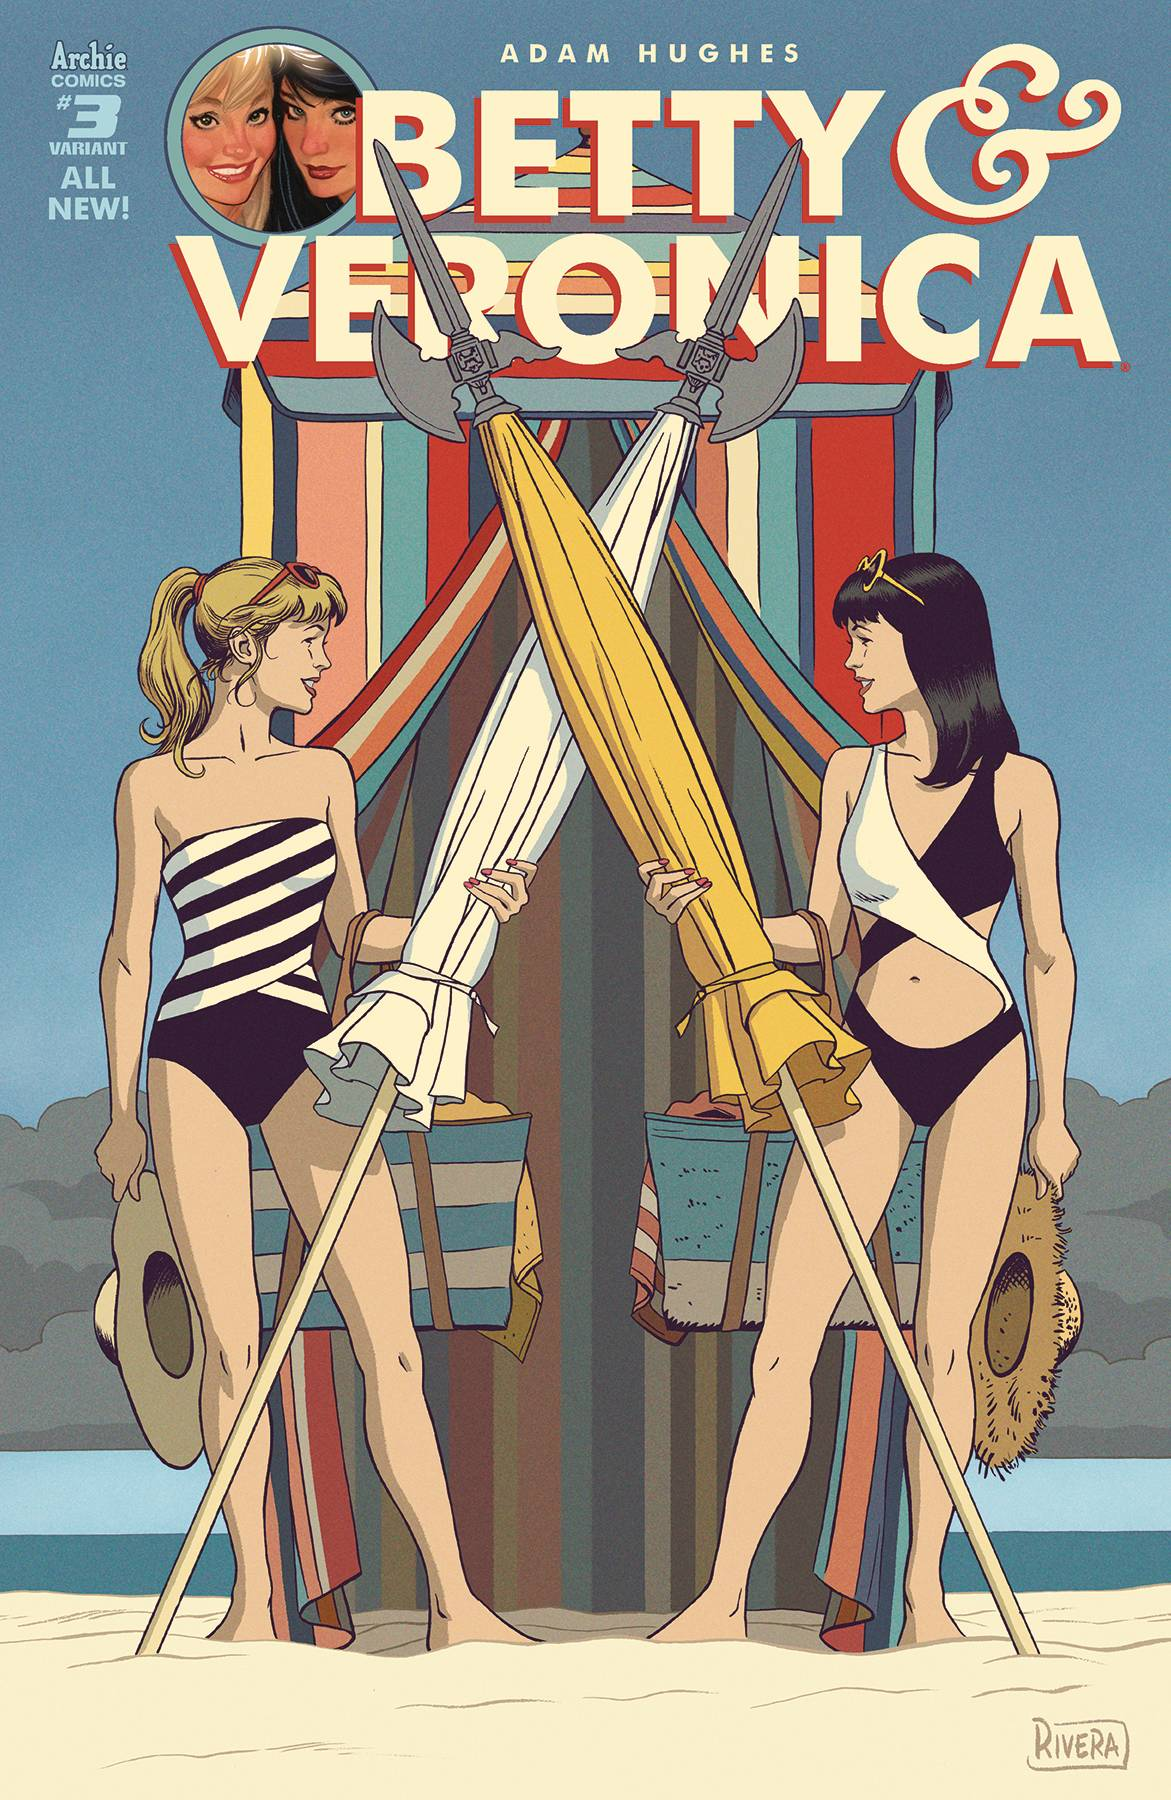 BETTY & VERONICA BY ADAM HUGHES 3 CVR E VAR RIVERA.jpg